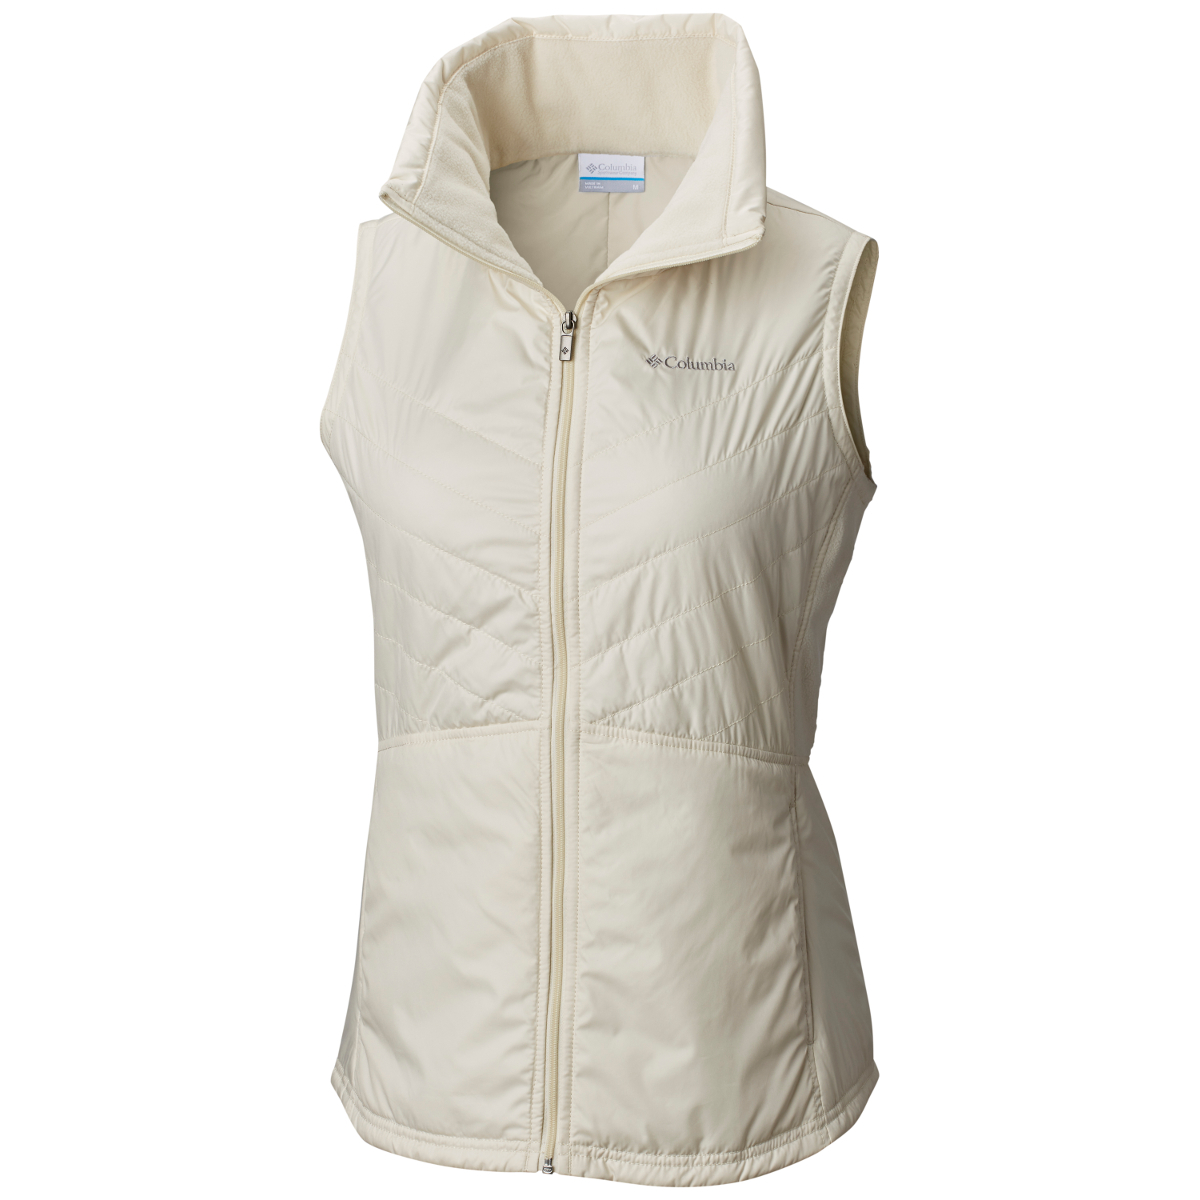 Columbia Women's Mix It Arounda Za  Ii Vest - White, XL